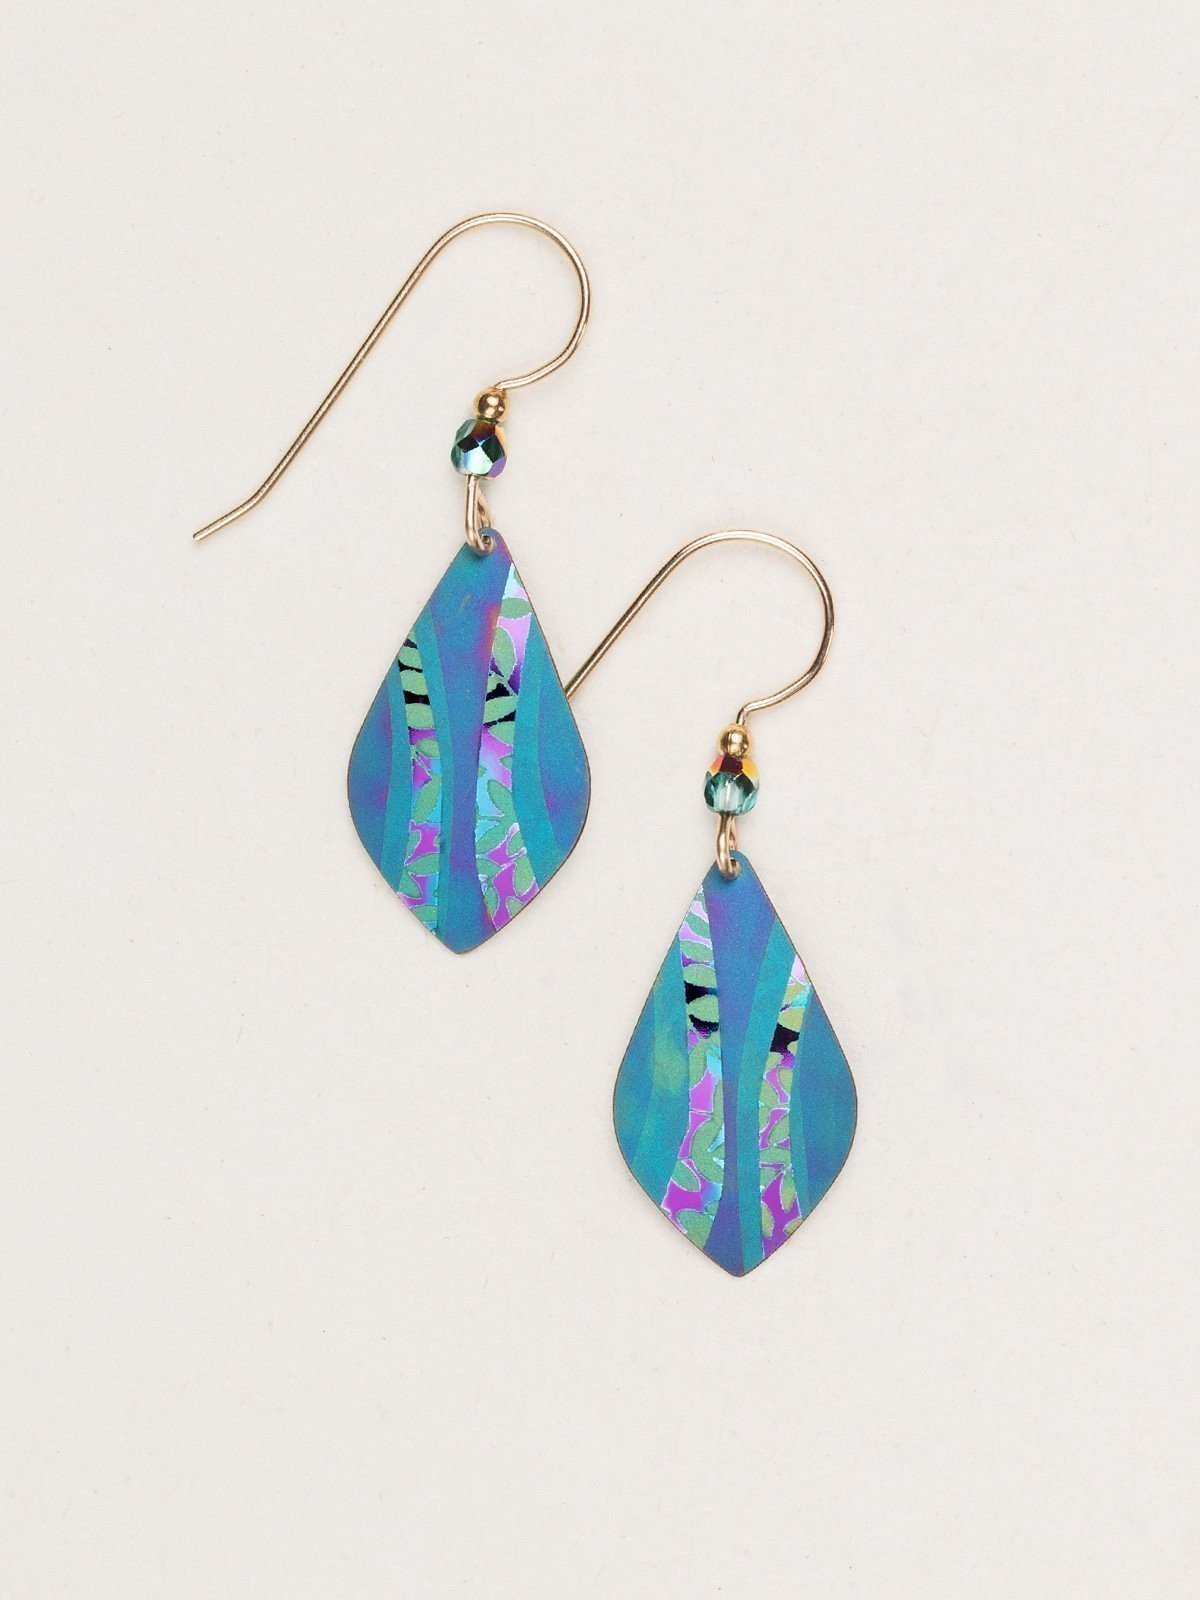 Riverwind earrings by Holly Yashi Jewelry